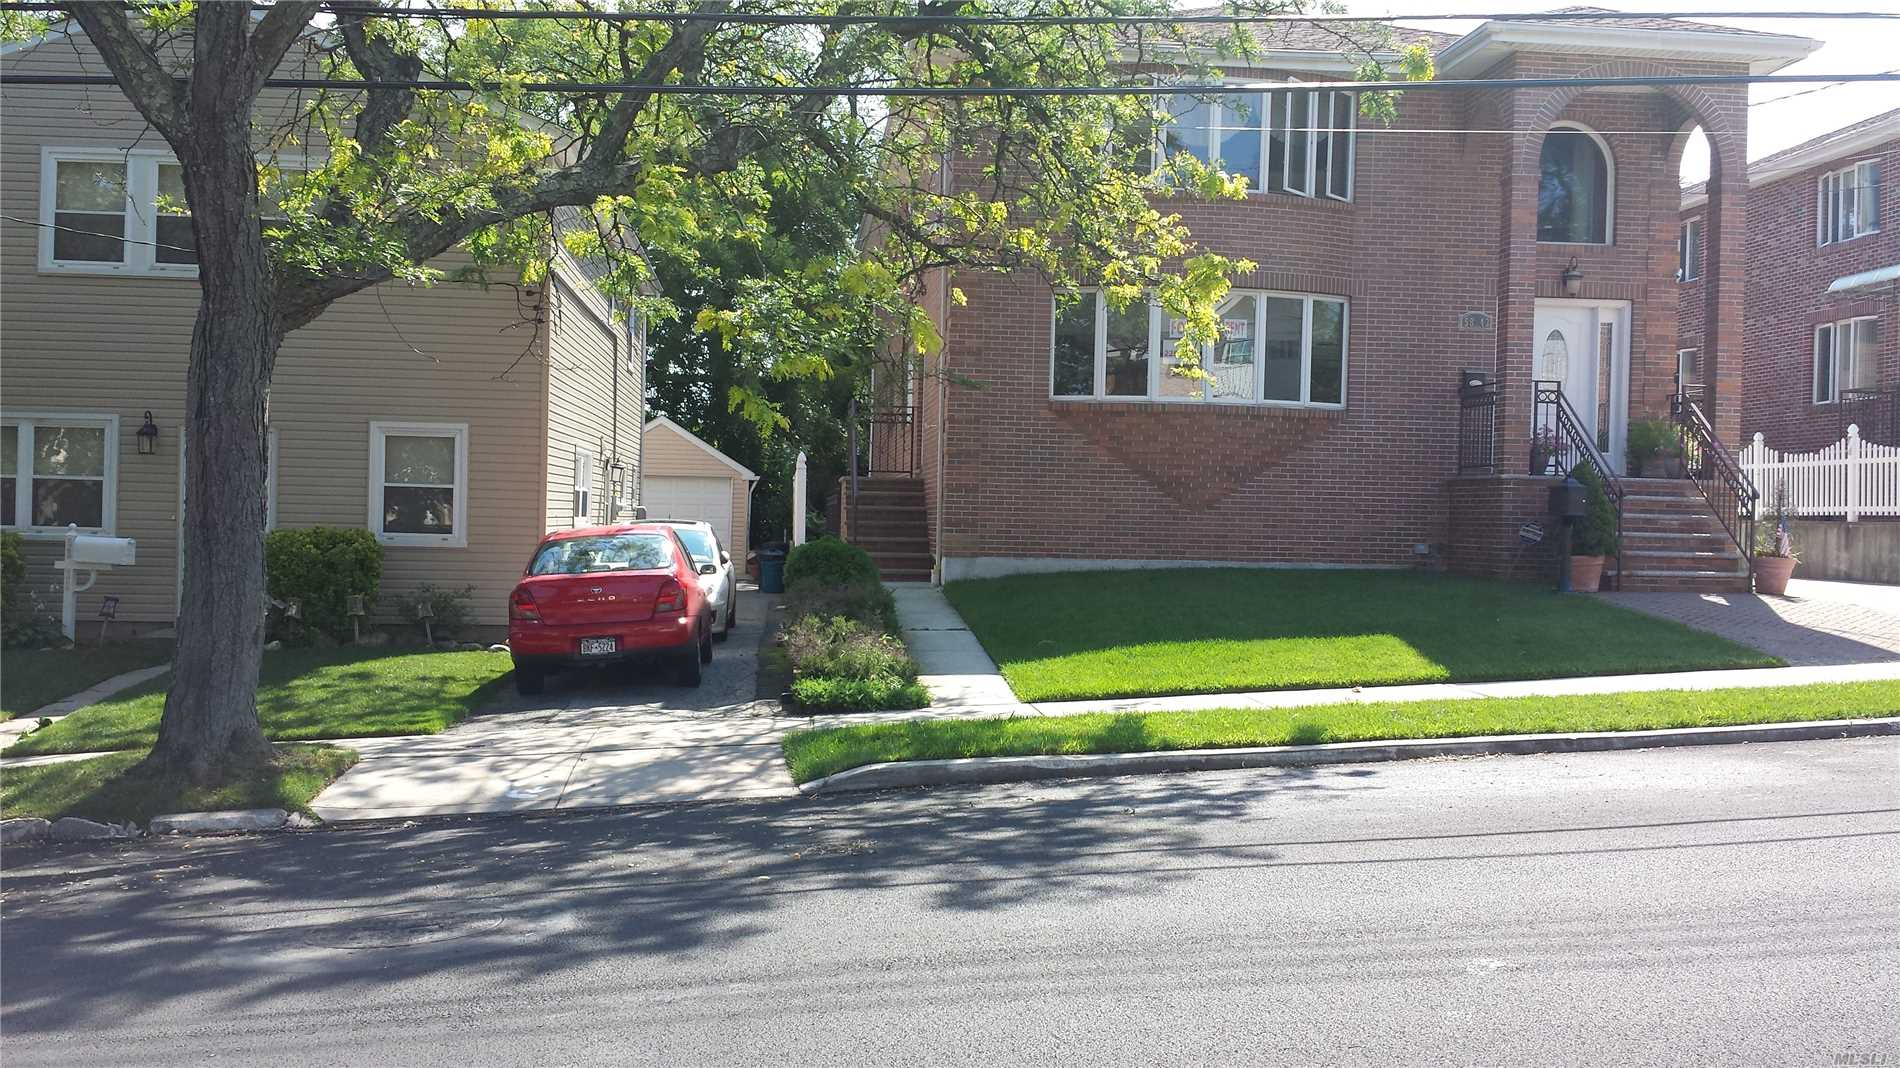 Building Size 29X58, Apt. Around 1600 Sqt. Excellent Condition. Income Verification And Credit Report.